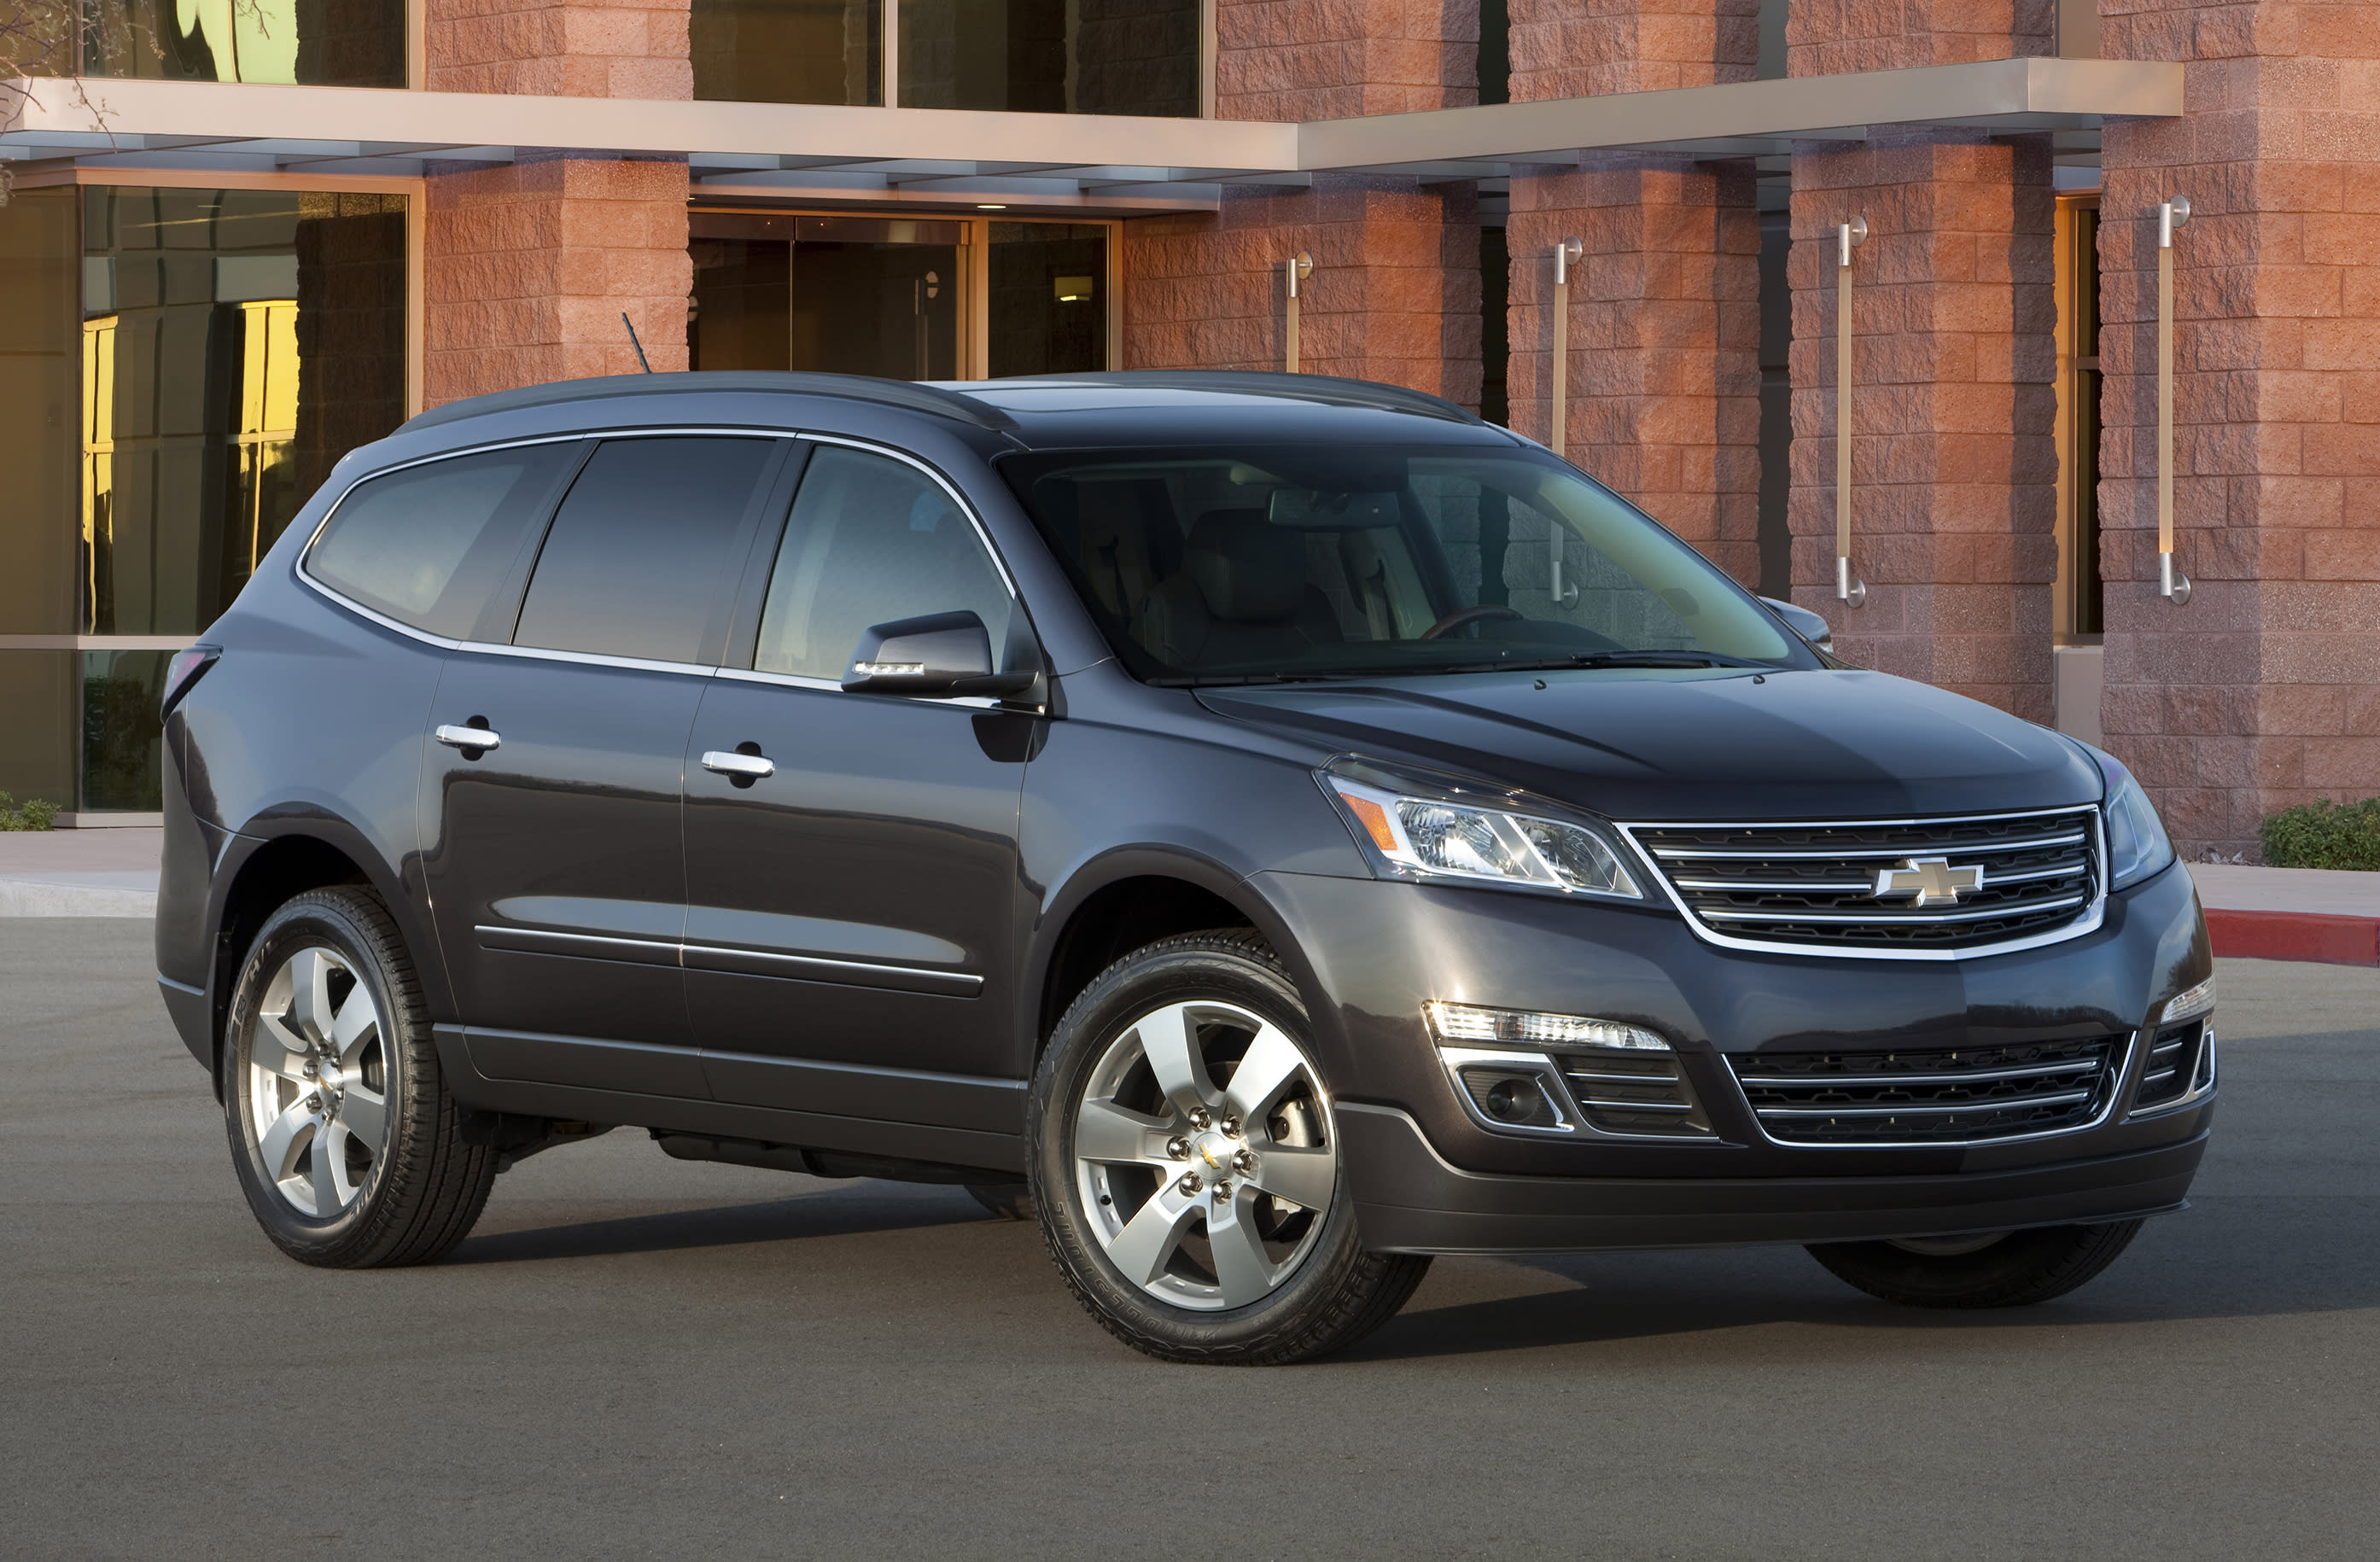 GM recalls SUVs, tells owners not to use windshield wipers